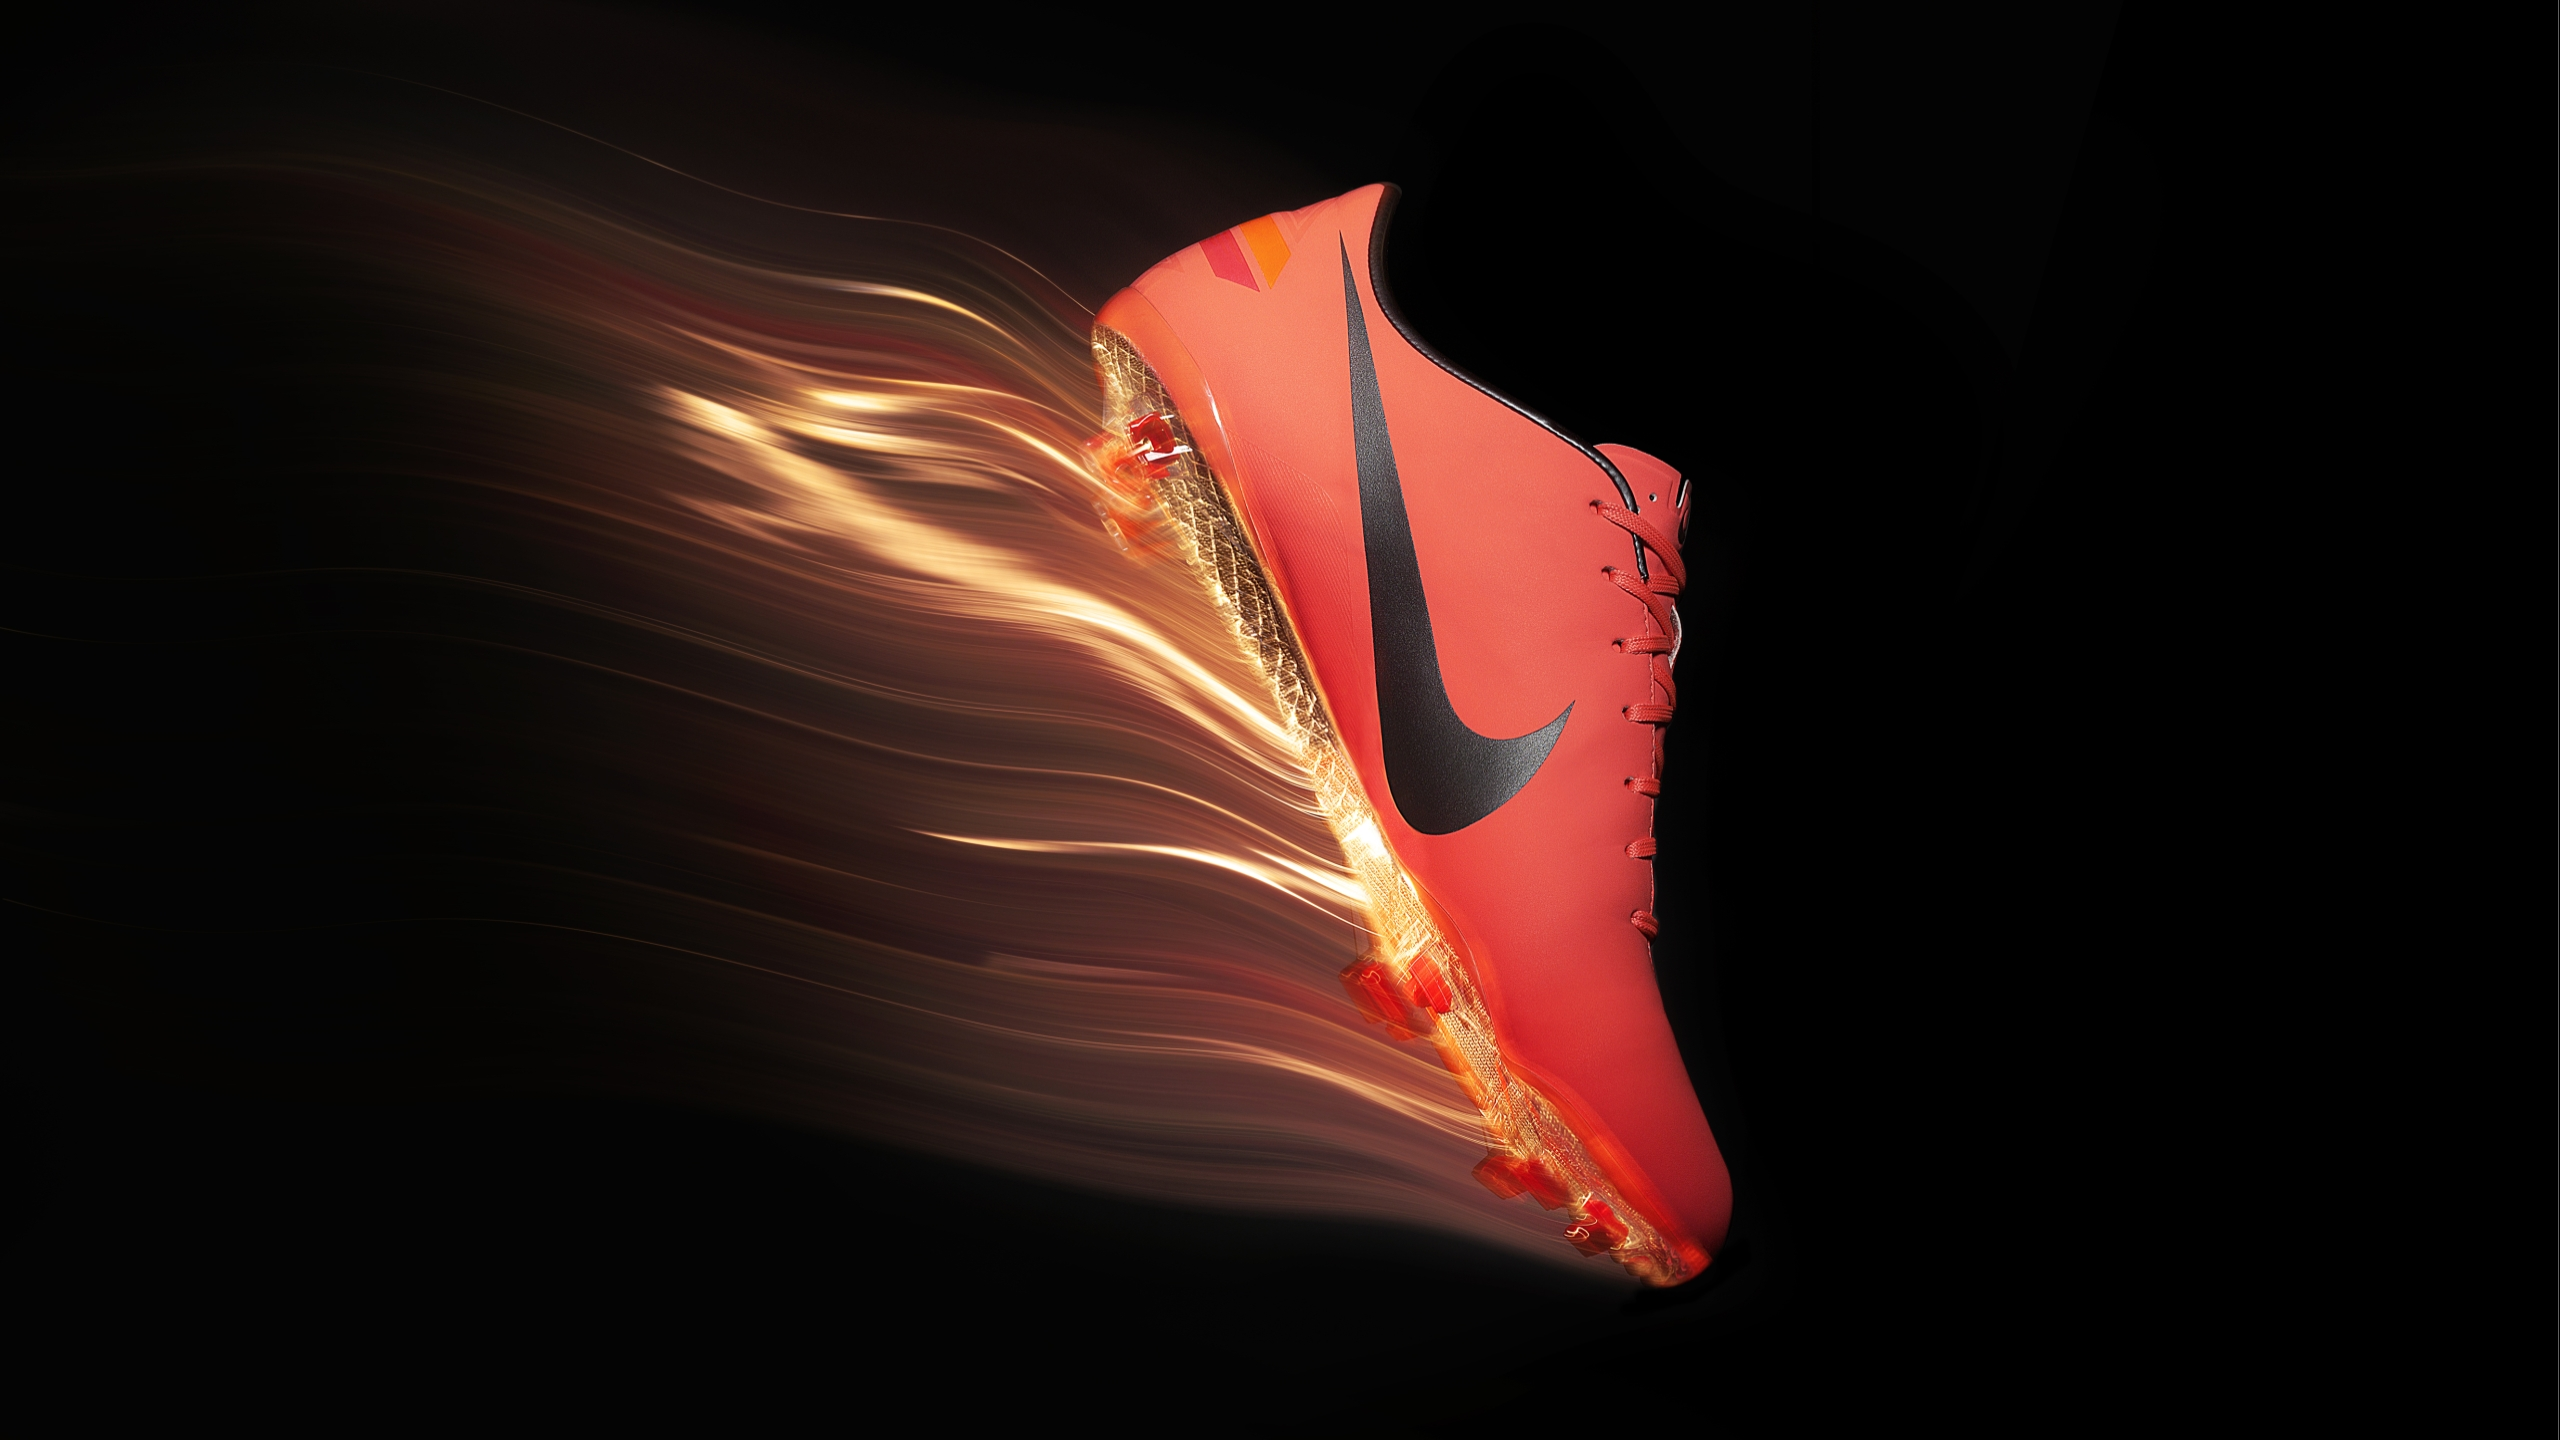 Hd wallpaper nike - Hd Wallpaper Background Id 470824 2560x1440 Products Nike